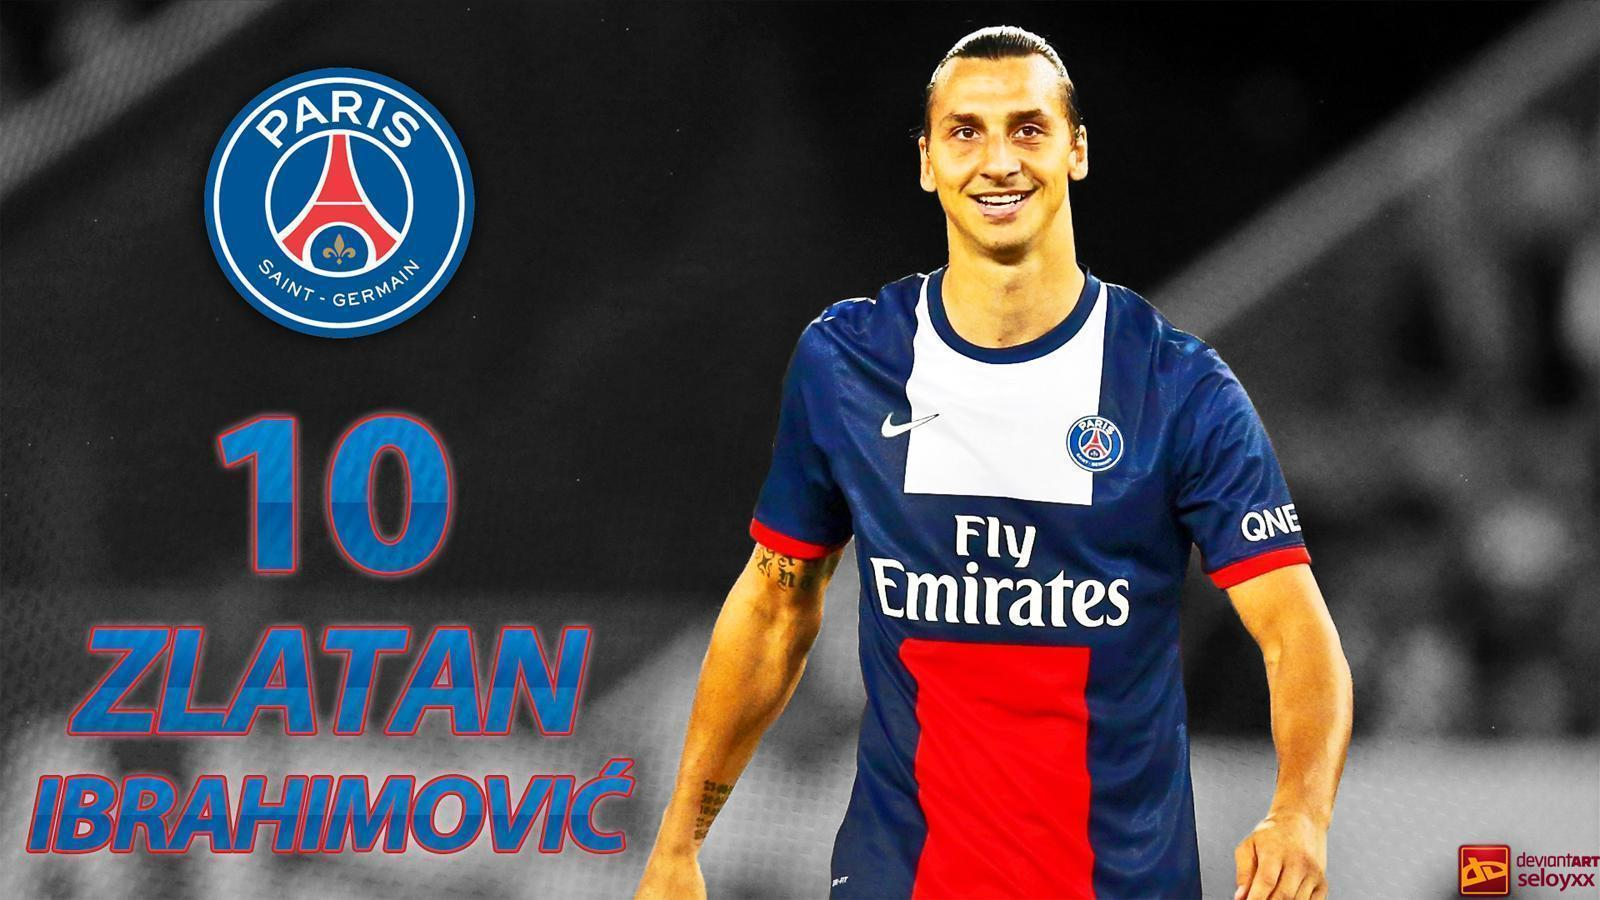 zlatan ibrahimovic wallpapers wallpaper cave. Black Bedroom Furniture Sets. Home Design Ideas